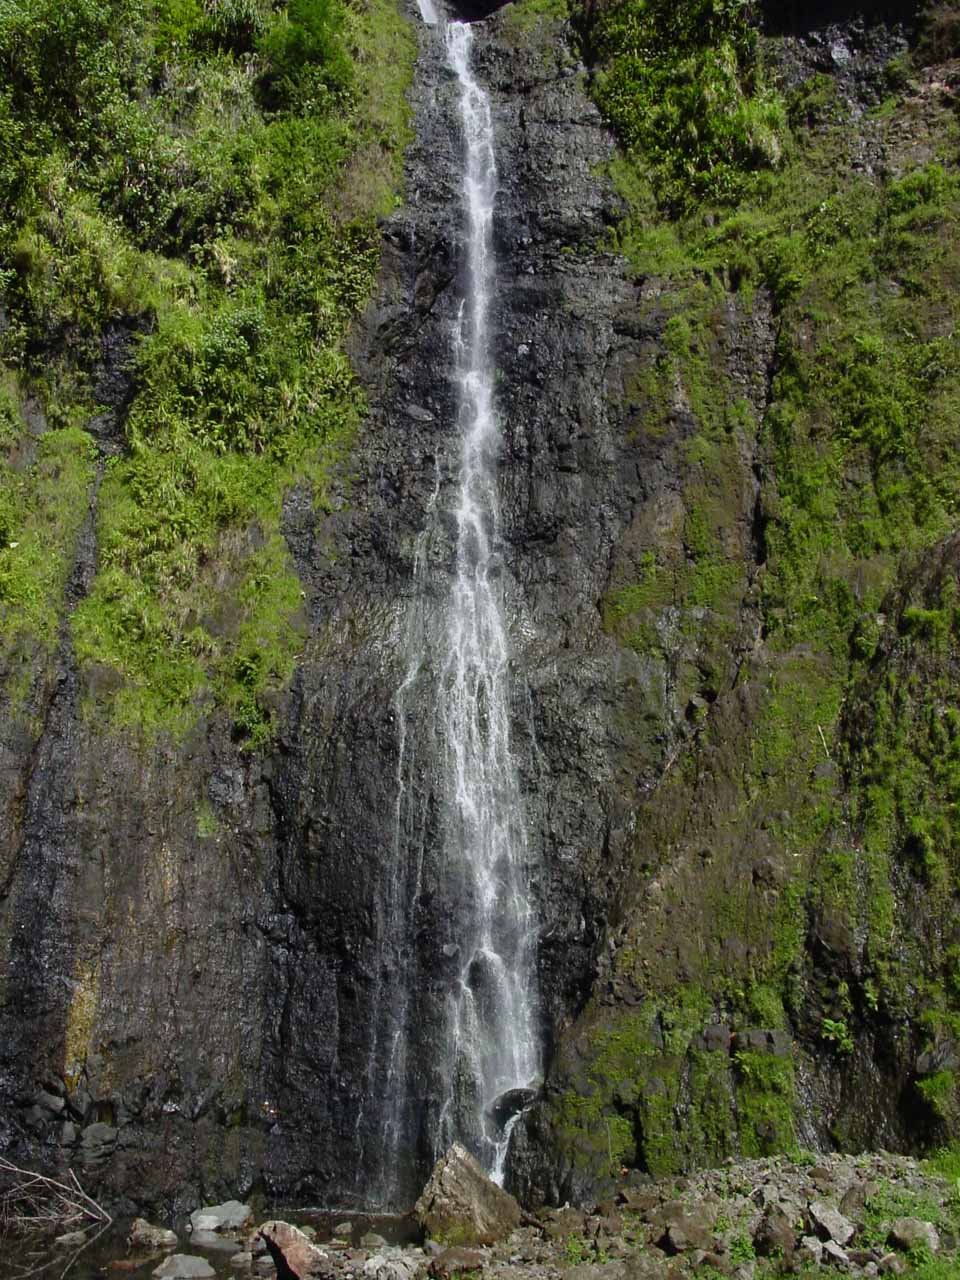 At the base of Vaimahutu Falls in September 2002